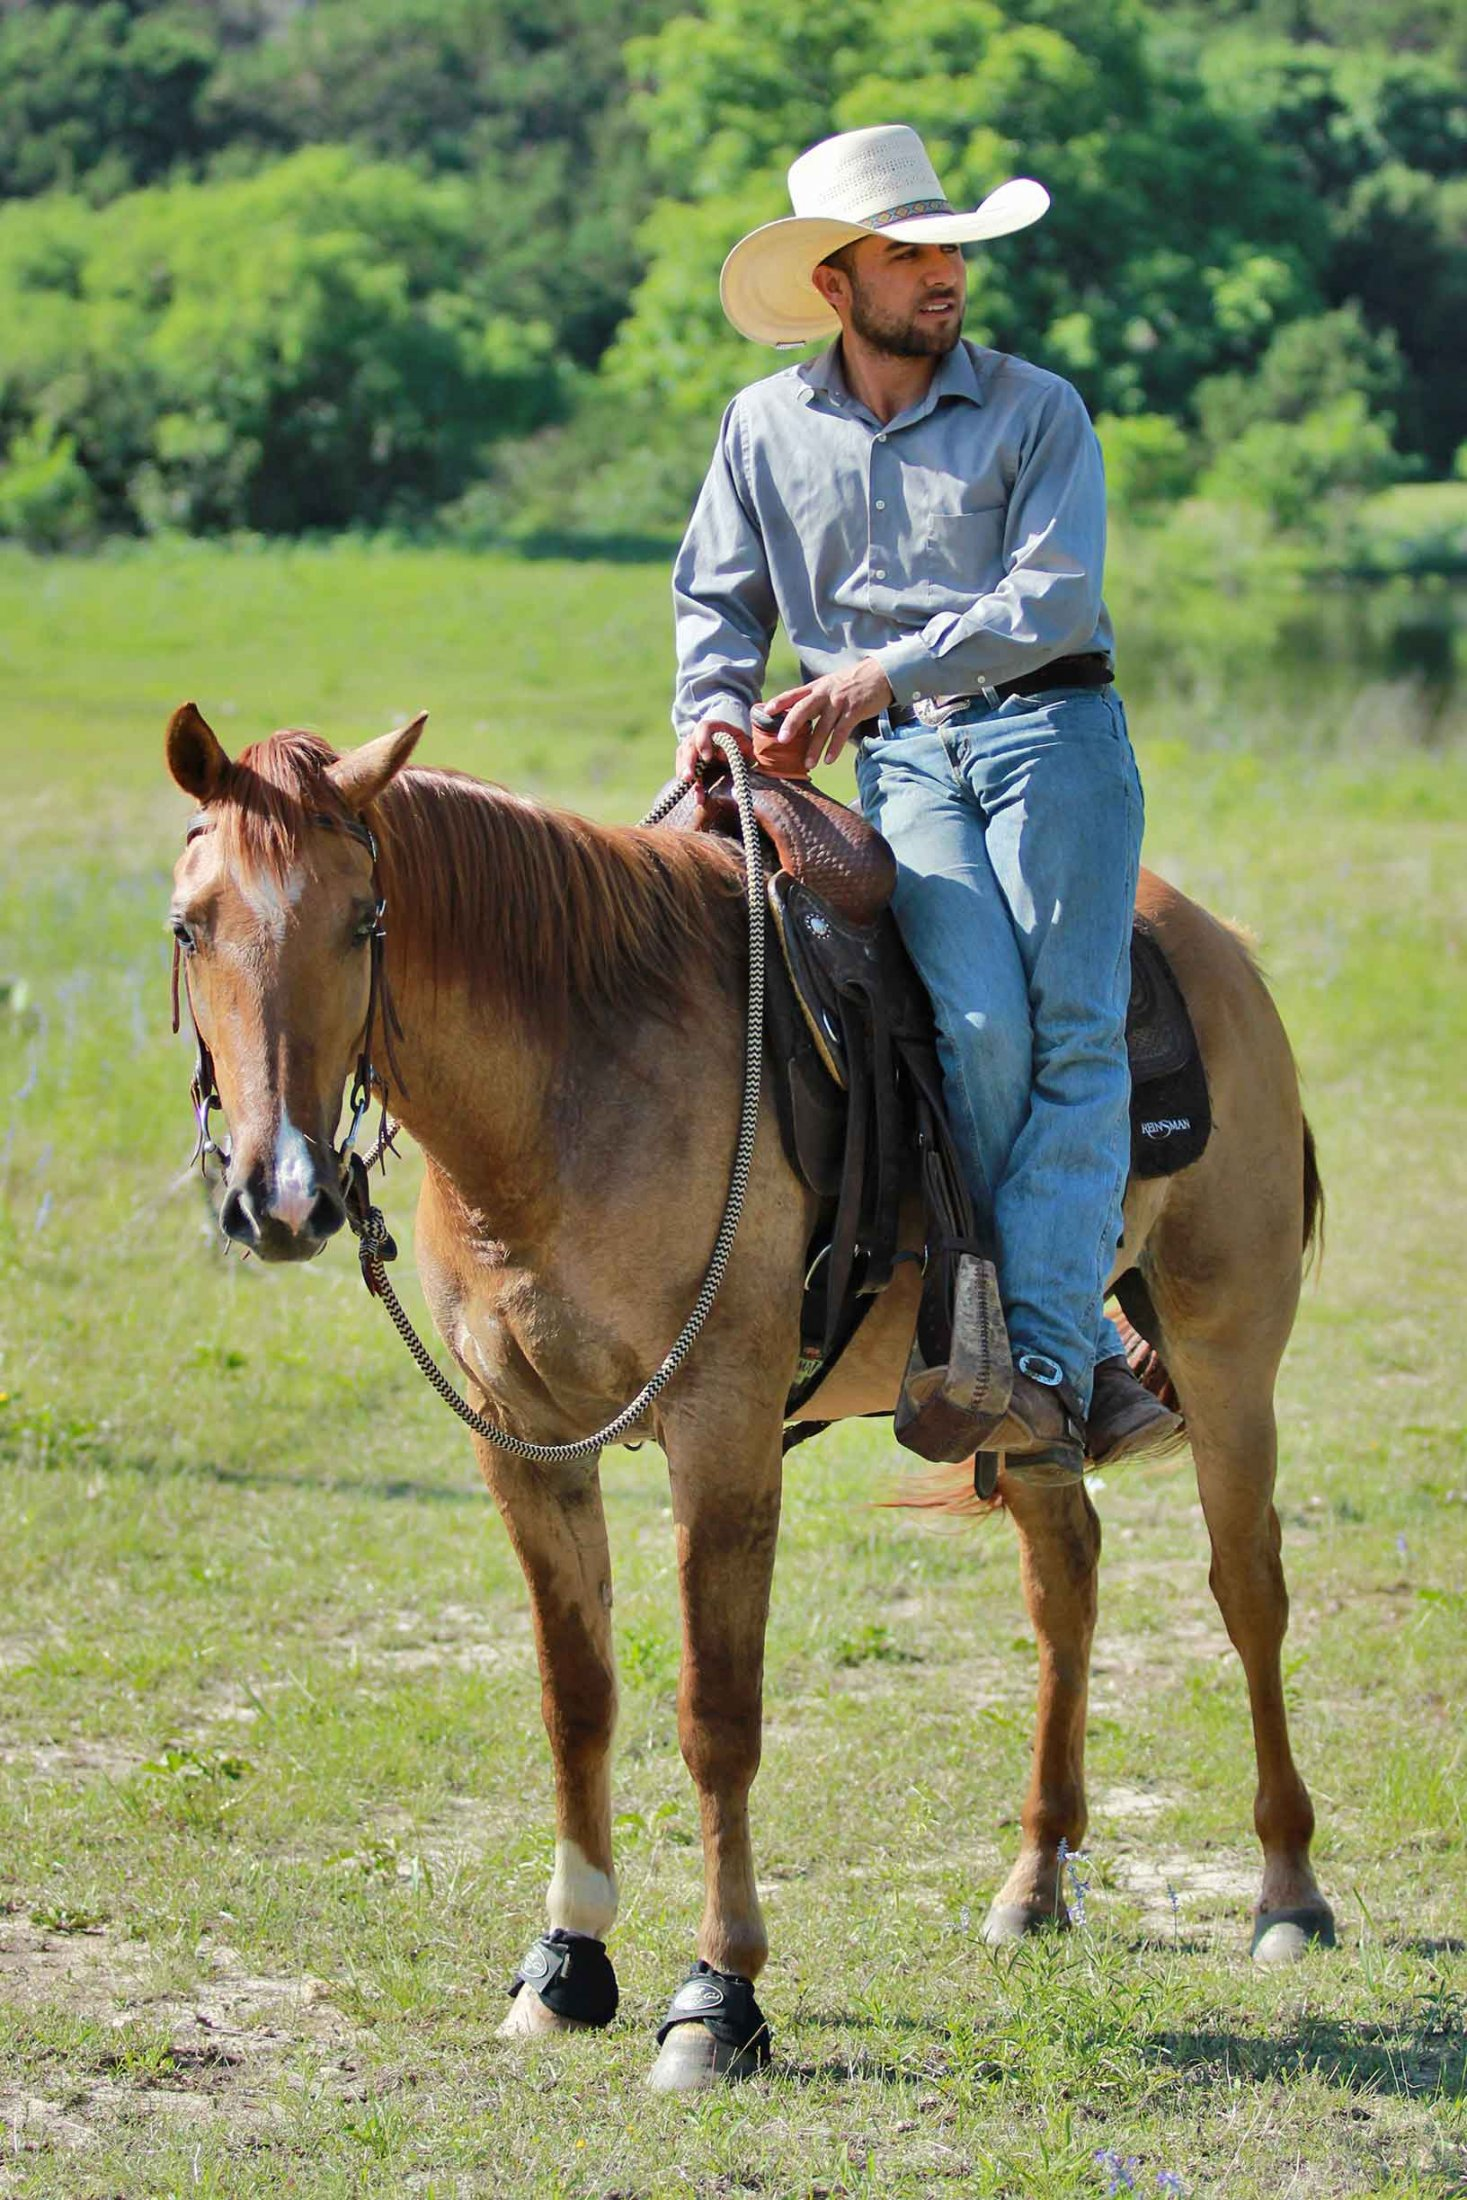 We are so incredibly lucky to have Reyes on our team. He trains under the natural horsemanship philosophy which makes for gentle horses